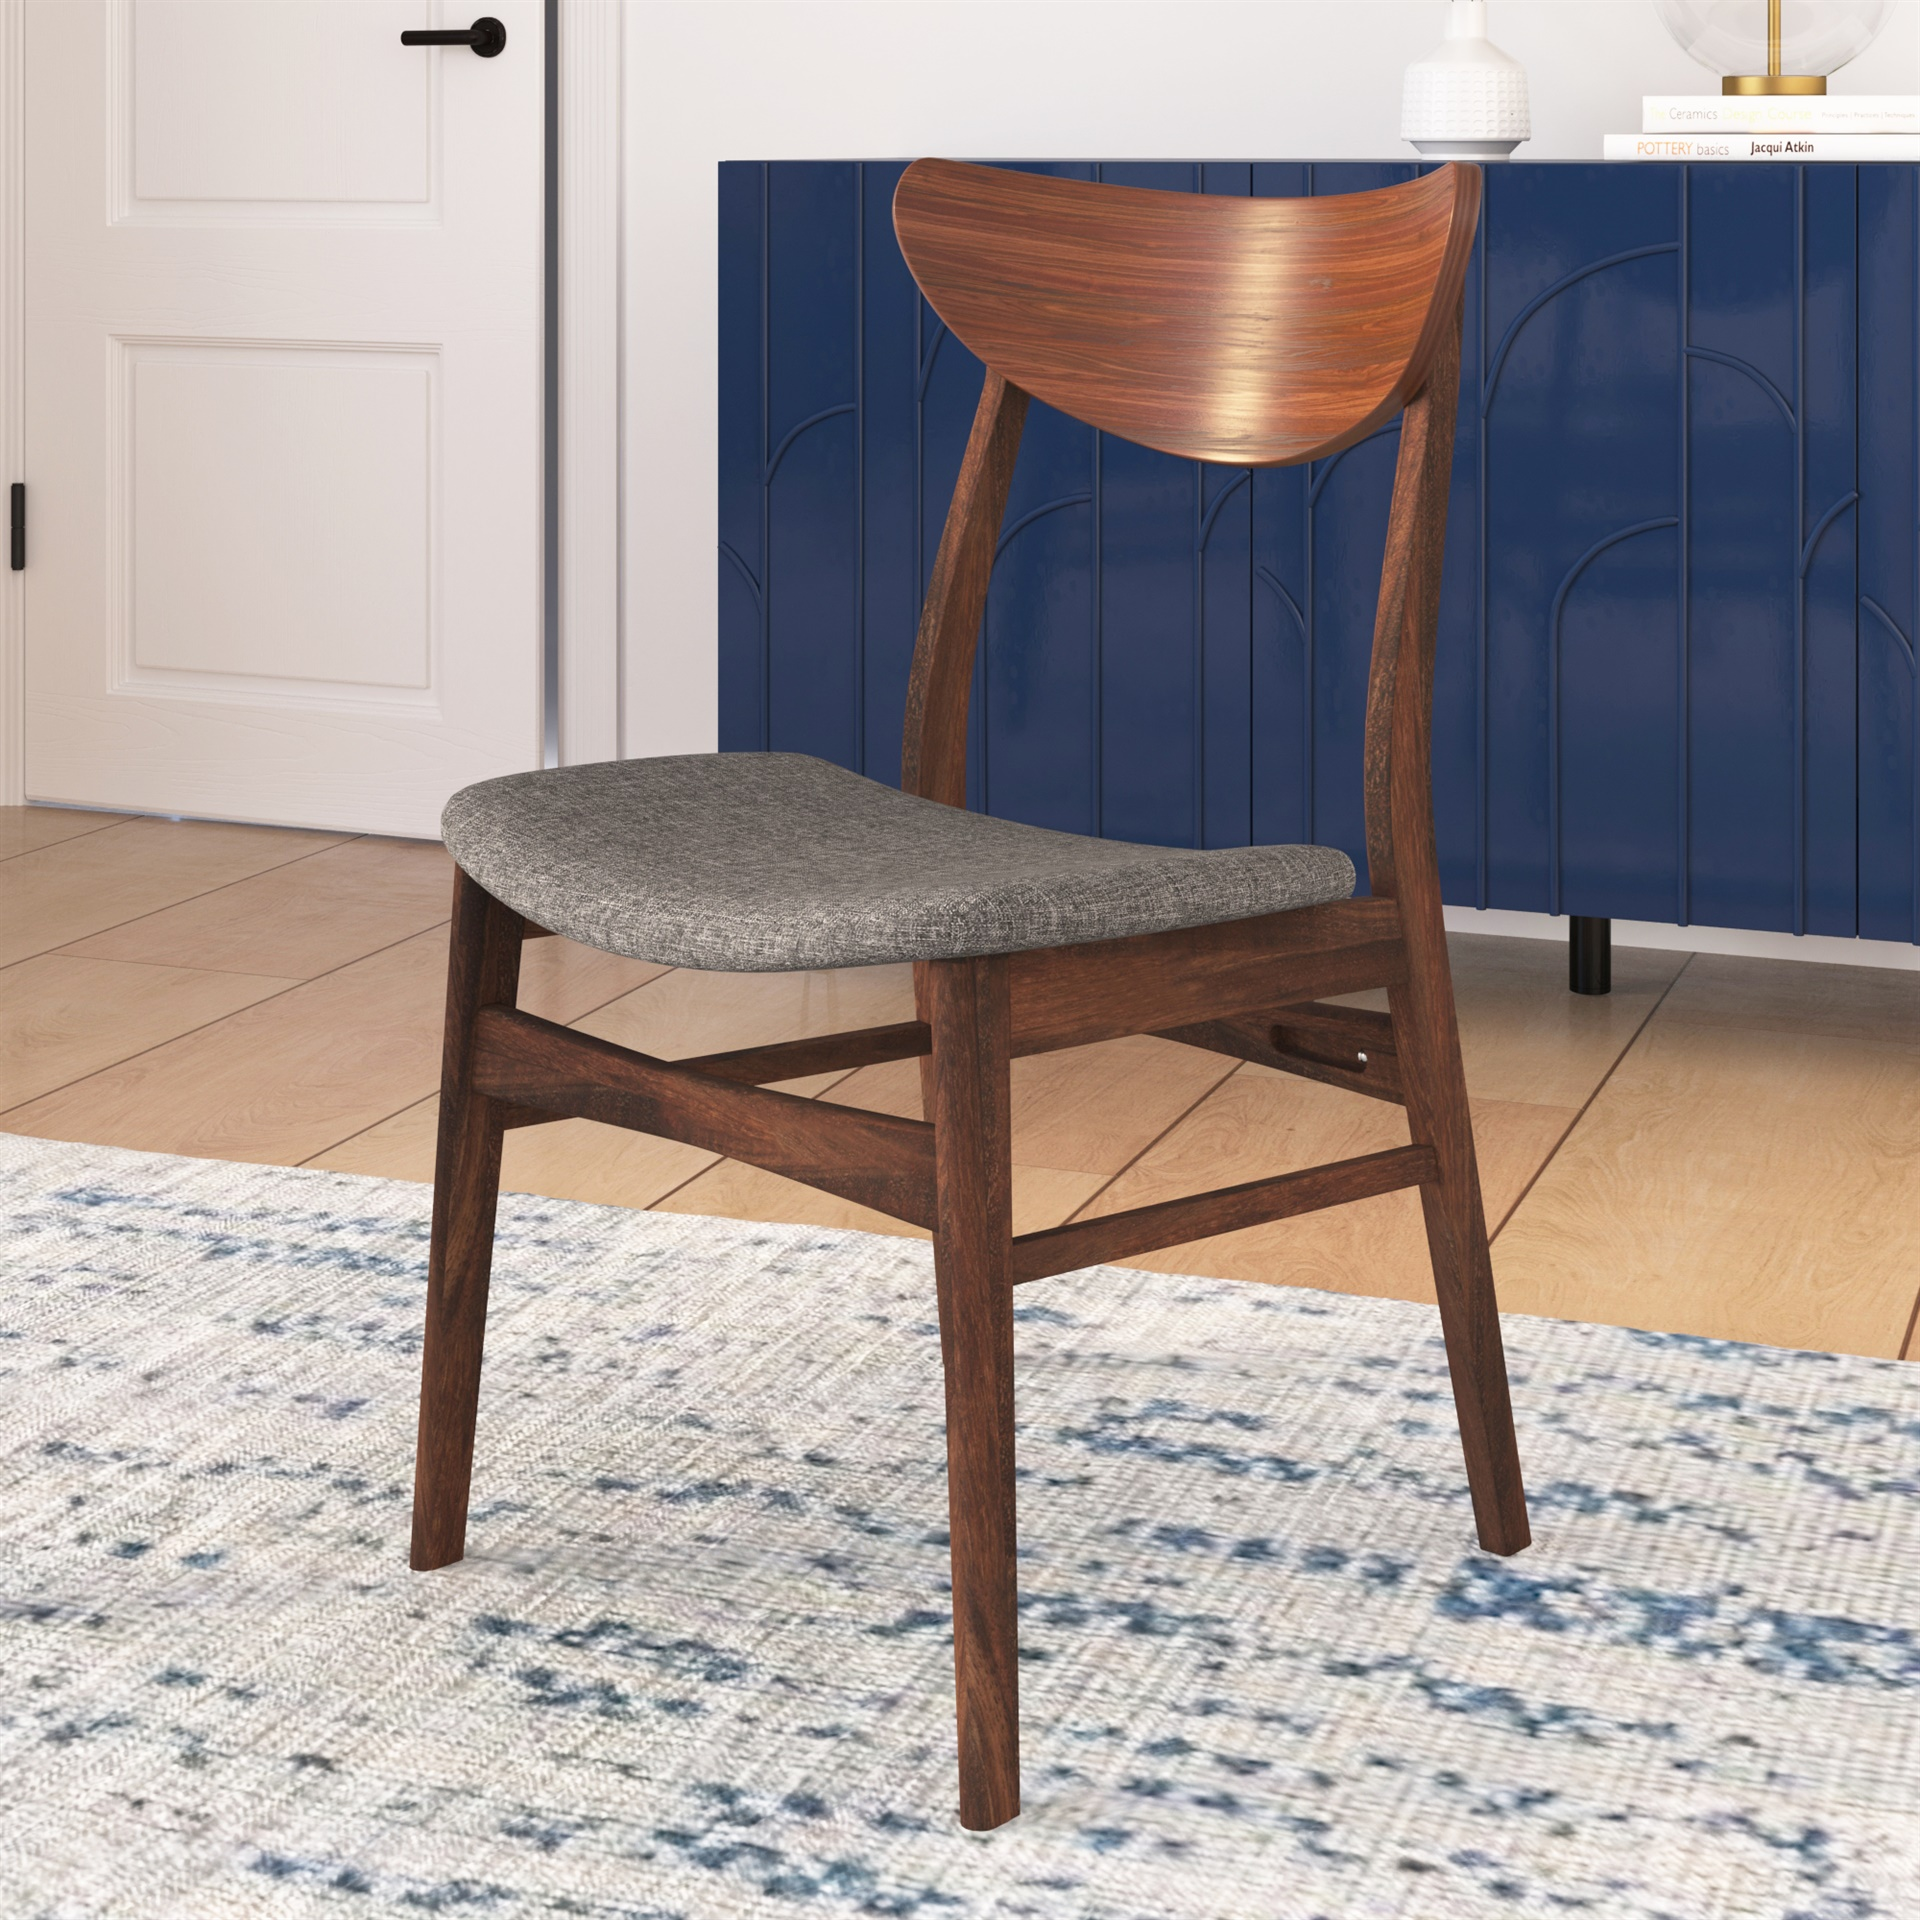 Stupendous Scandi Dining Chair Pabps2019 Chair Design Images Pabps2019Com